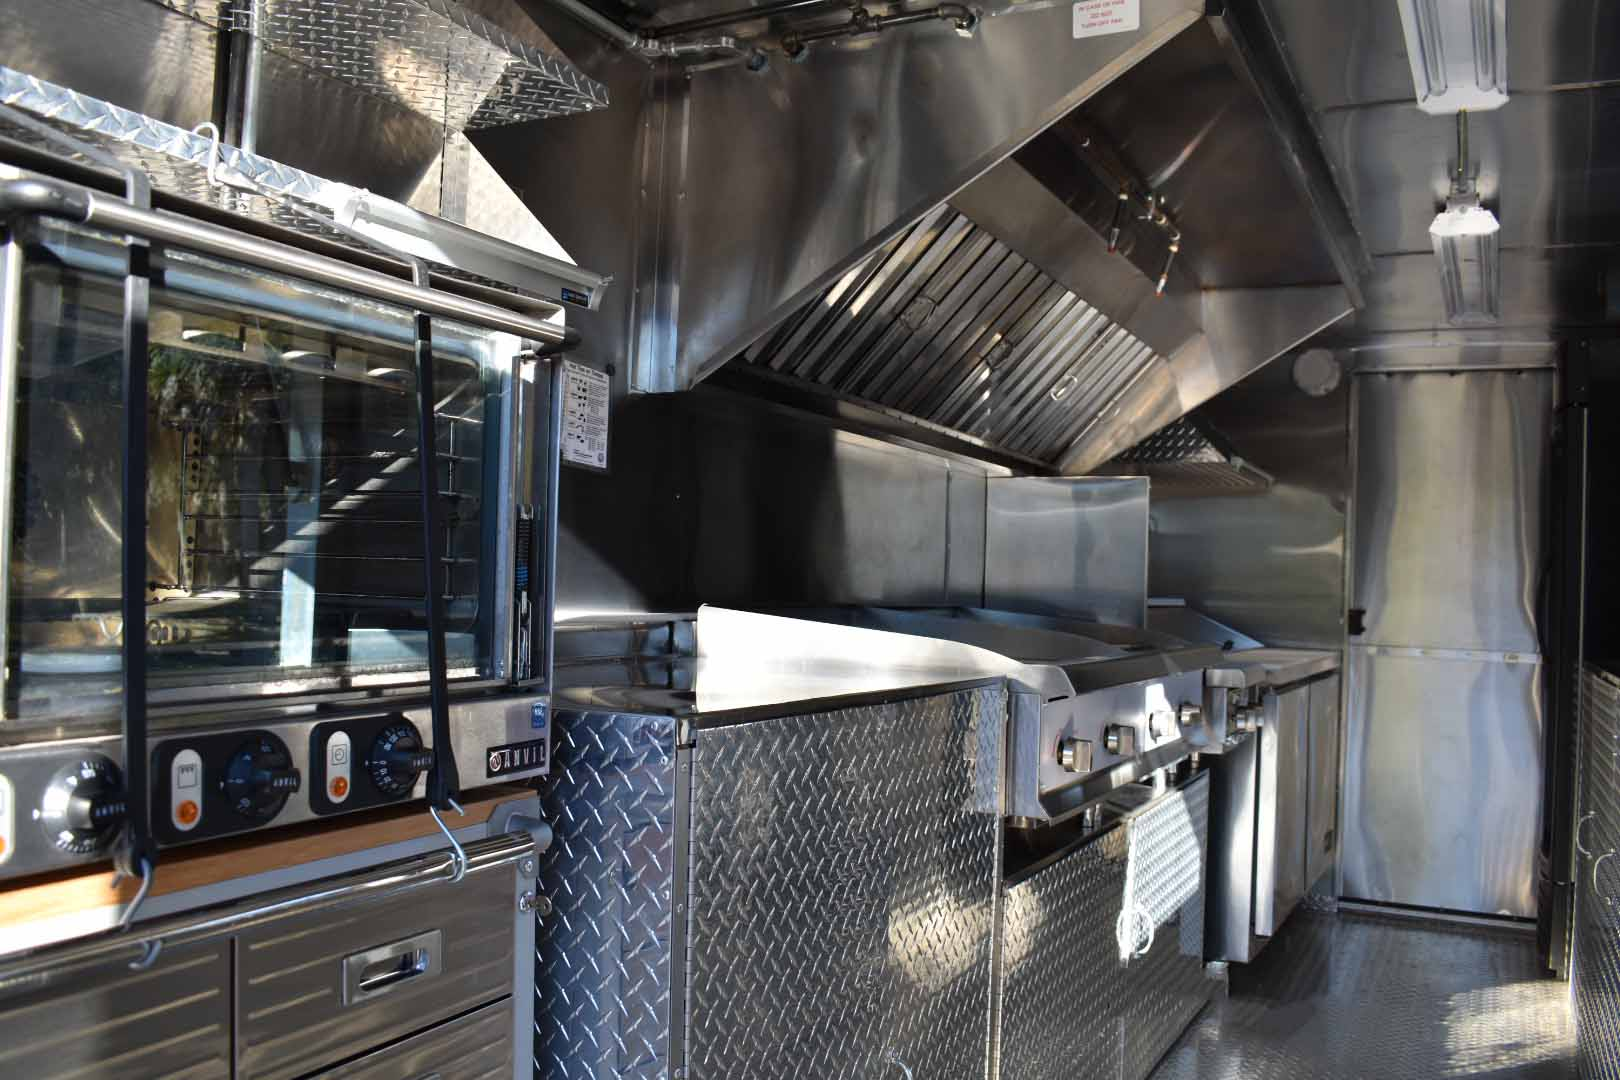 Food Truck For Sale Chevy Workhorse Tampa Bay Food Trucks